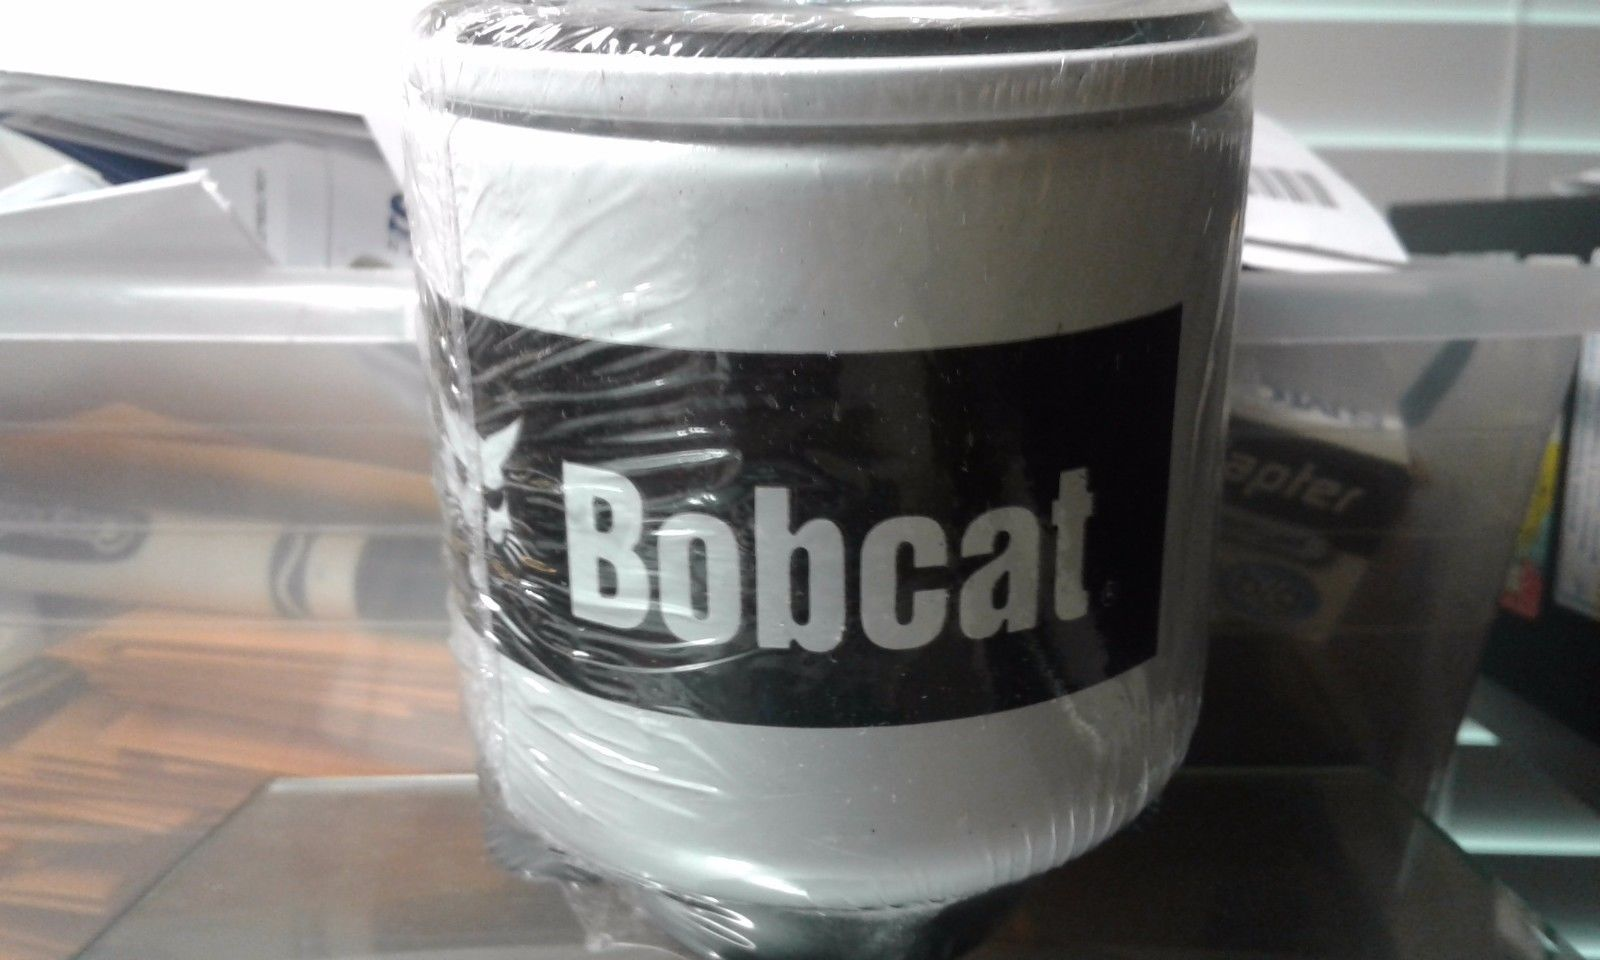 Genuine Bobcat 6988961 Fuel Filter 2 Qty And 50 Similar Items Filters S L1600